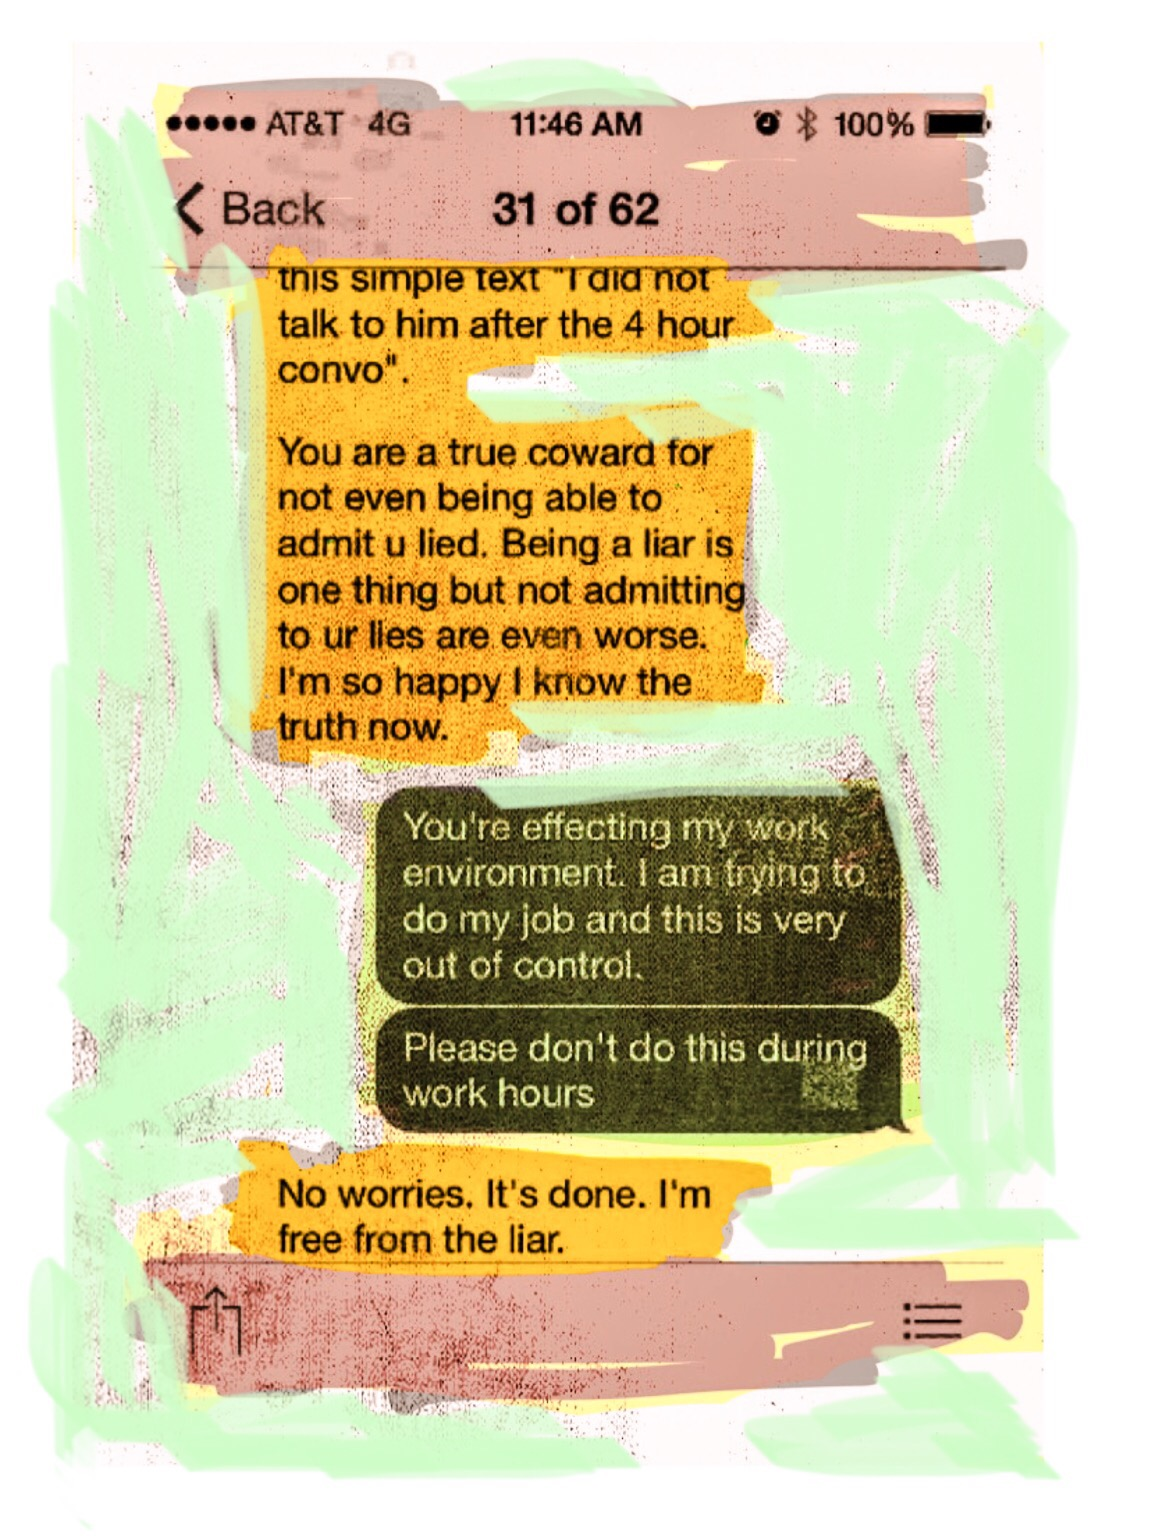 """Texts"", iPhone 6S, digital image, 2016."